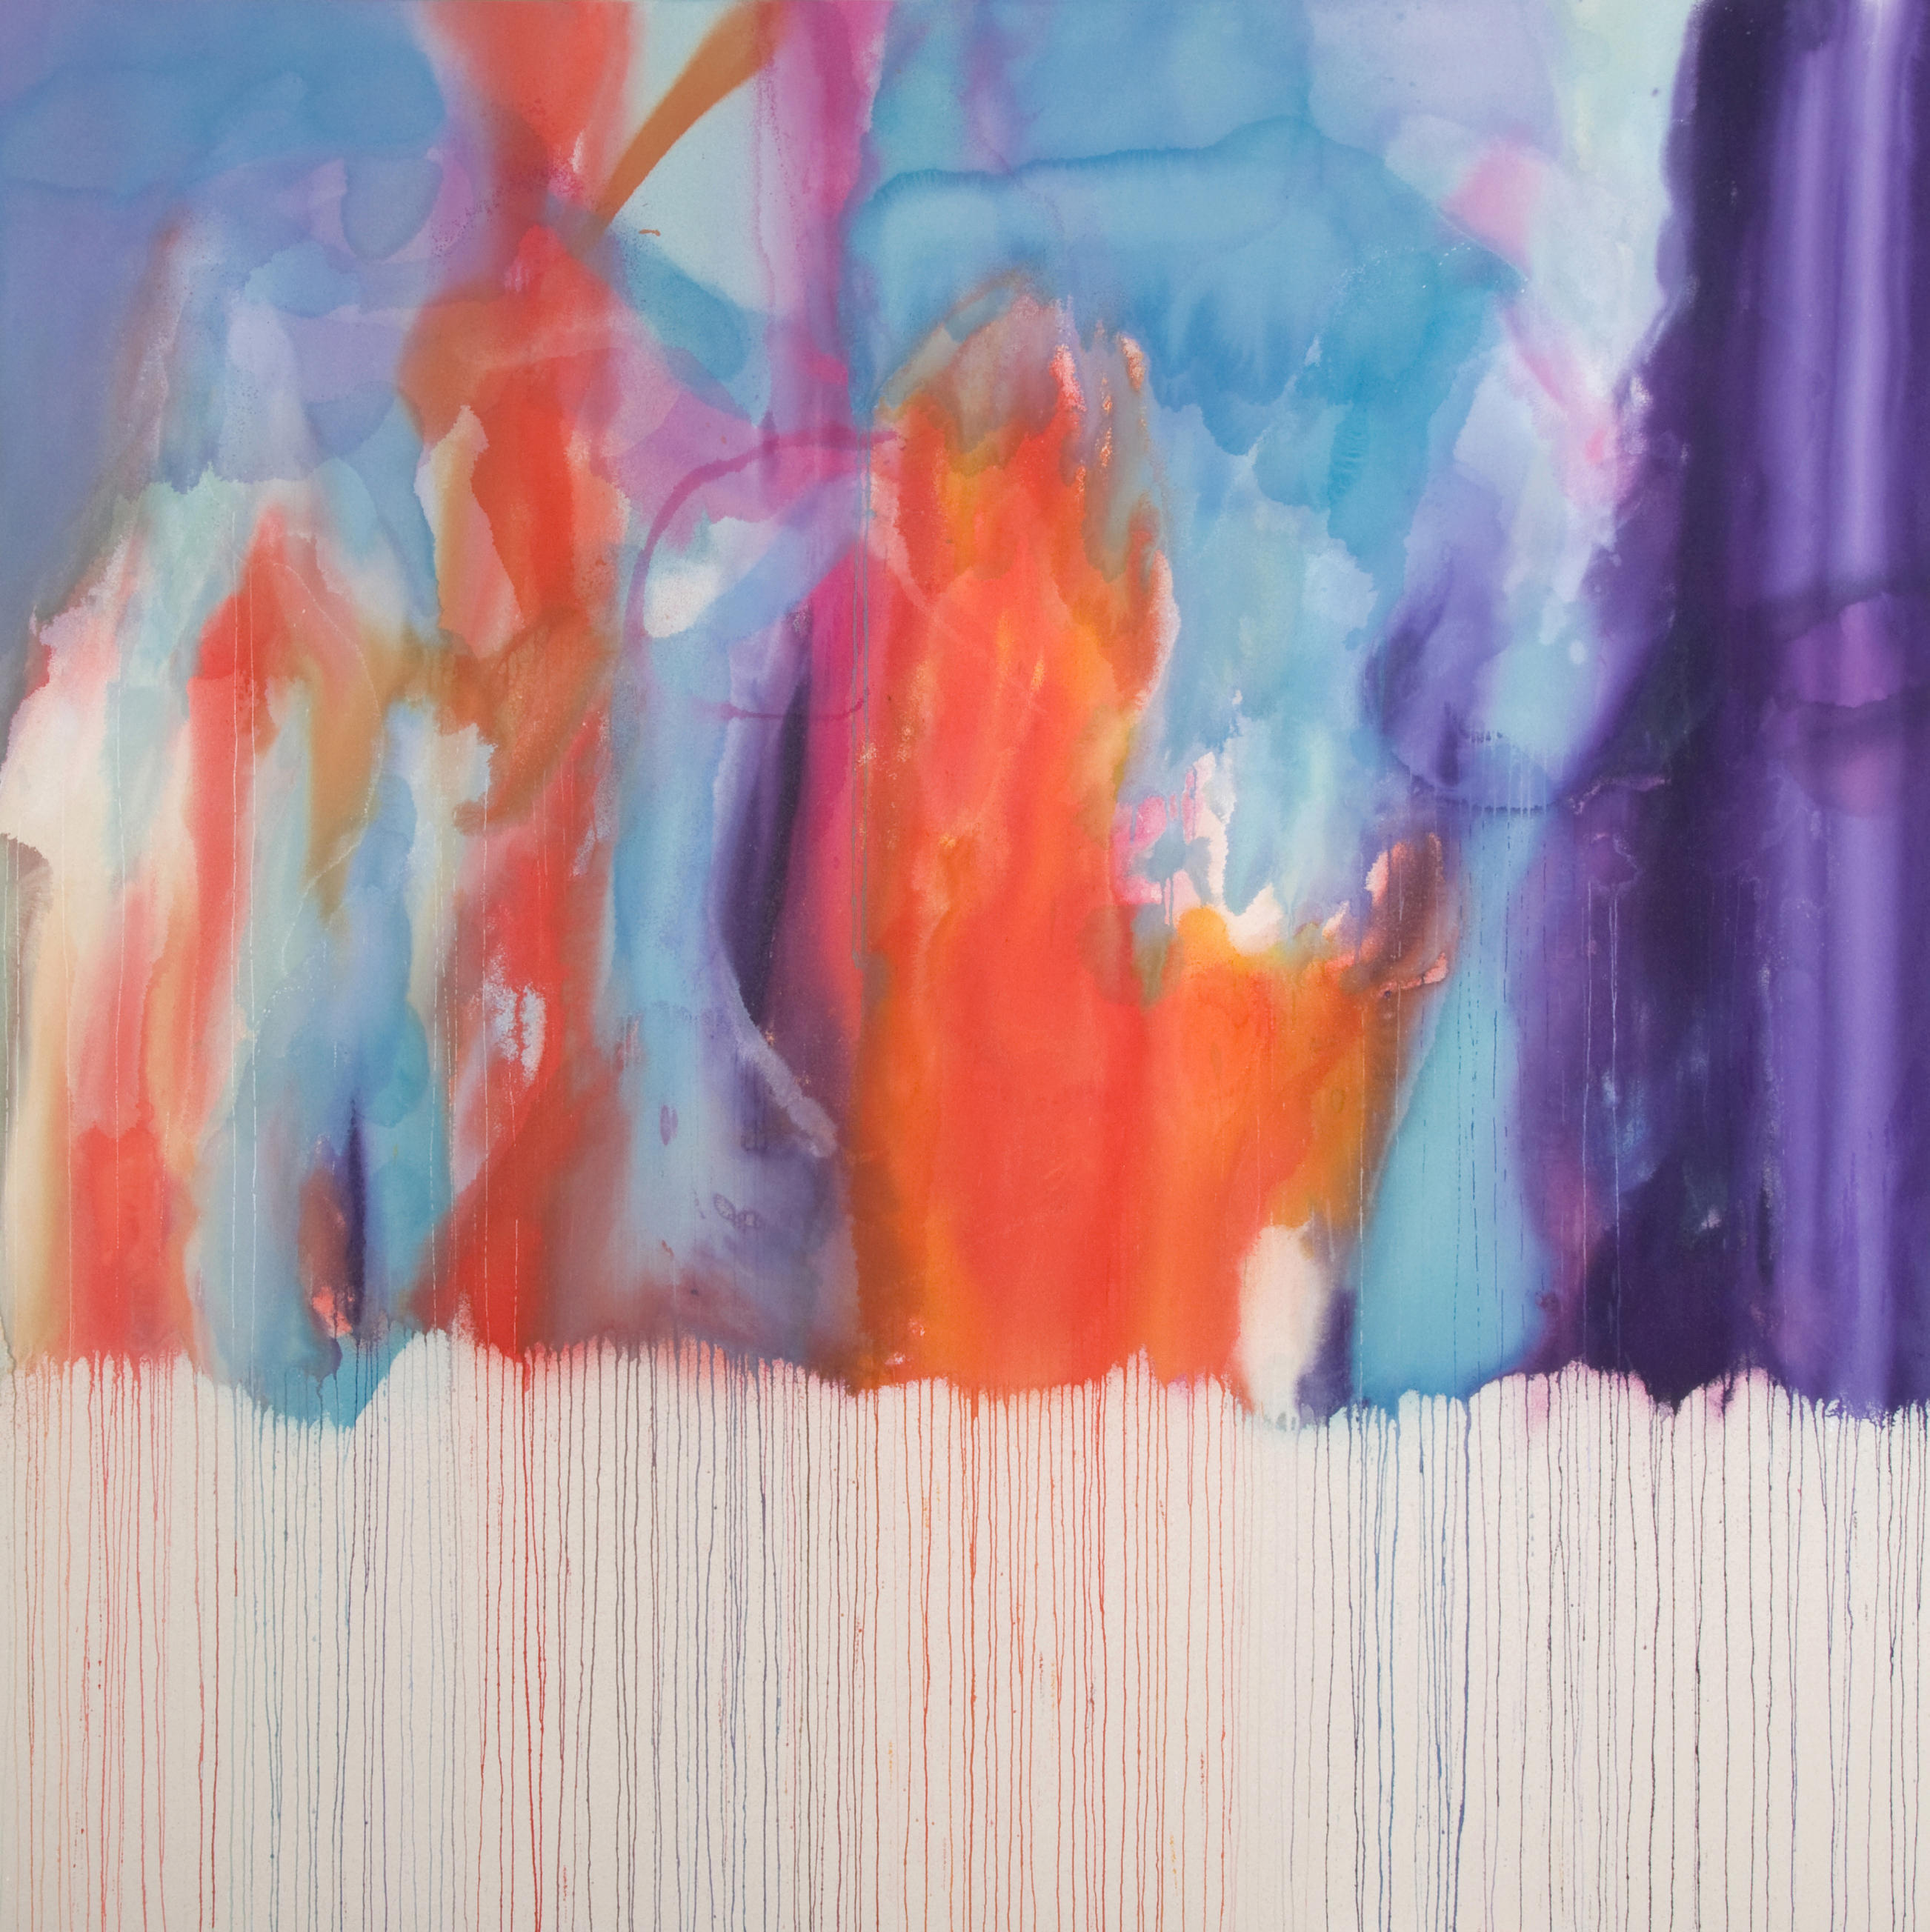 Ethereal | 71 x 71 inches | paint on canvas